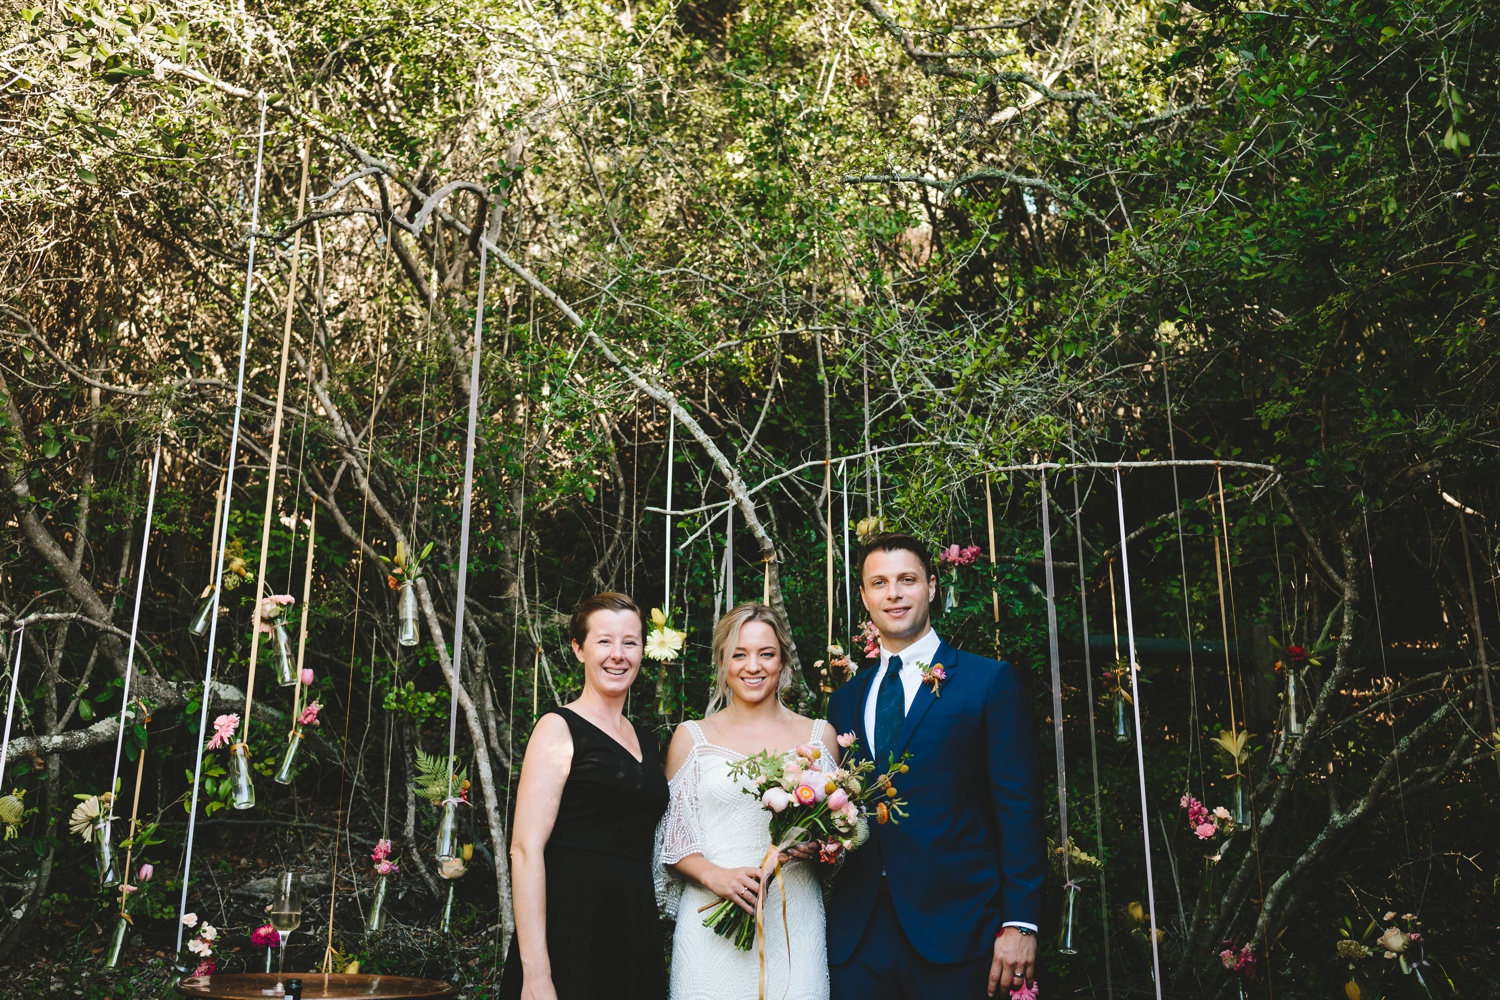 charlie_ray_photography_runaway_romance_elopement_emily_moon_plett_simple_boho_wedding_south_africa_bohemium_0071.jpg